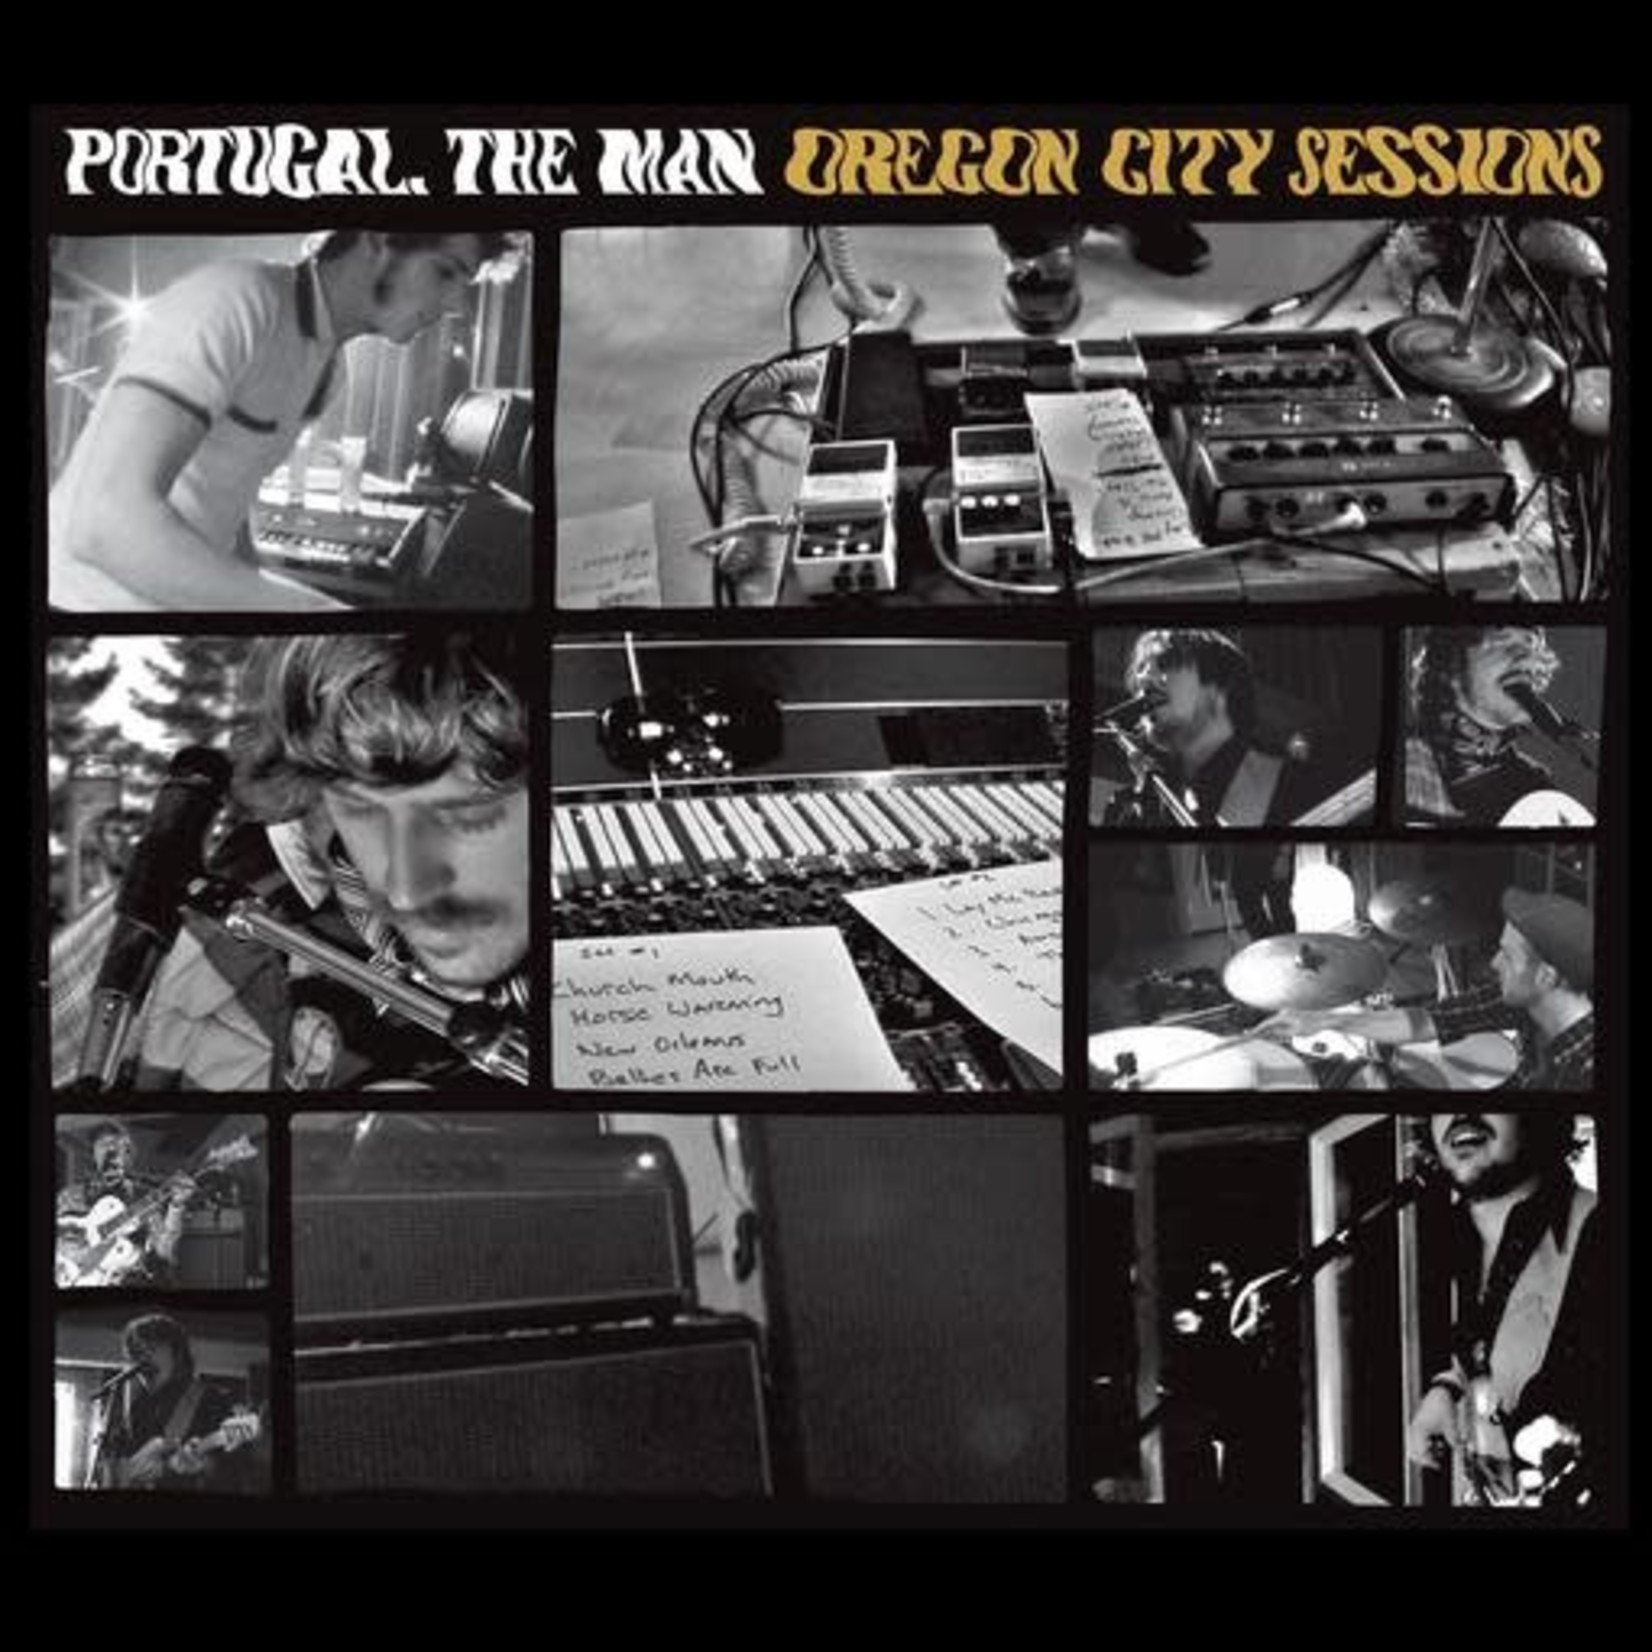 [New] Portugal. The Man: Oregon City Sessions (2LP)